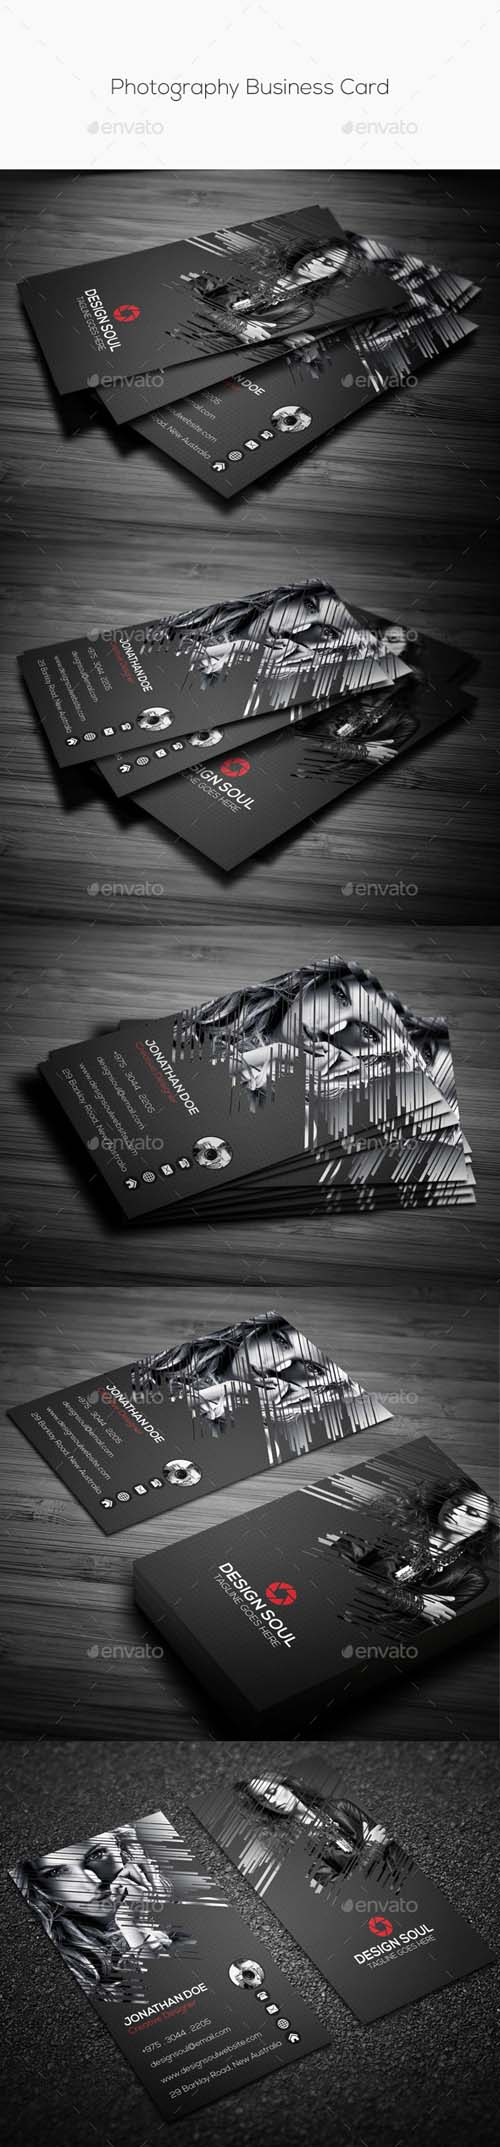 GR - Photography Business Card 10438153